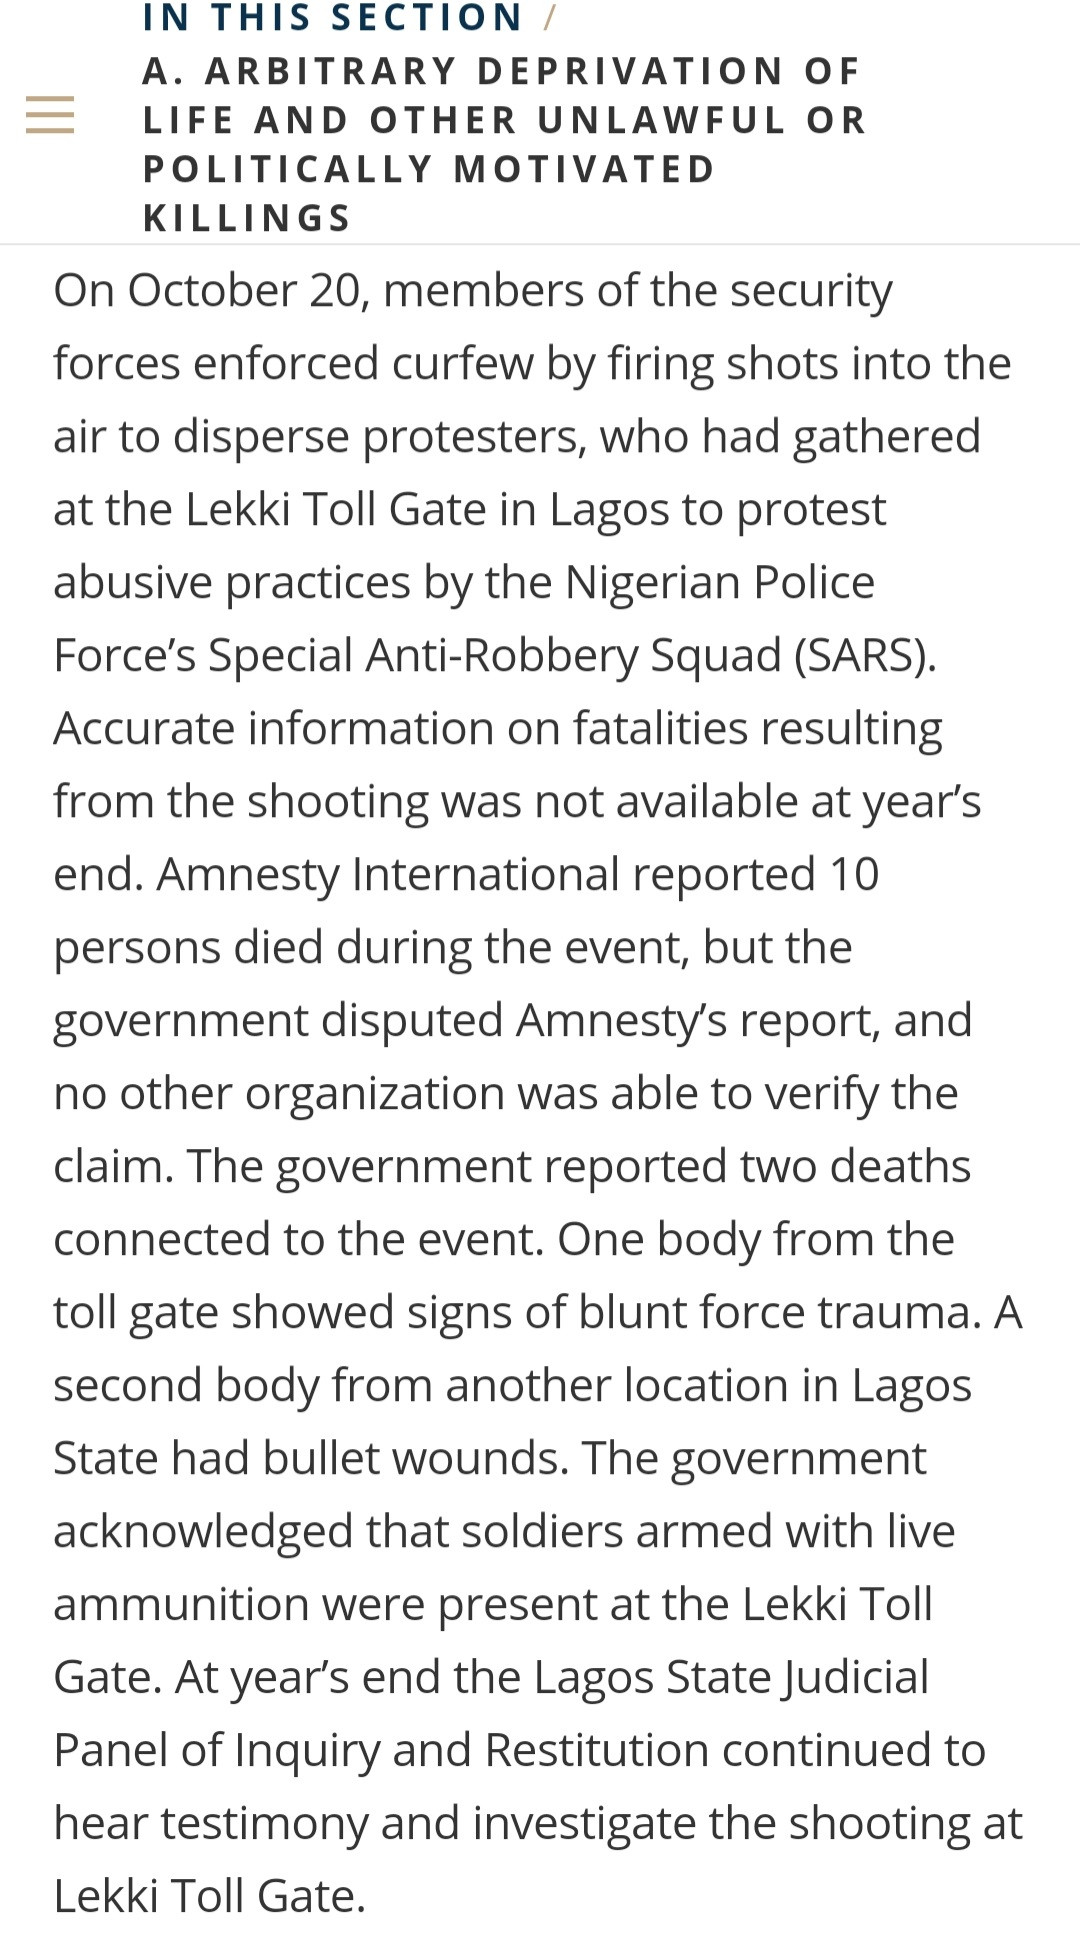 Claims soldiers killed protesters at Lekki Toll Gate not verified - US report